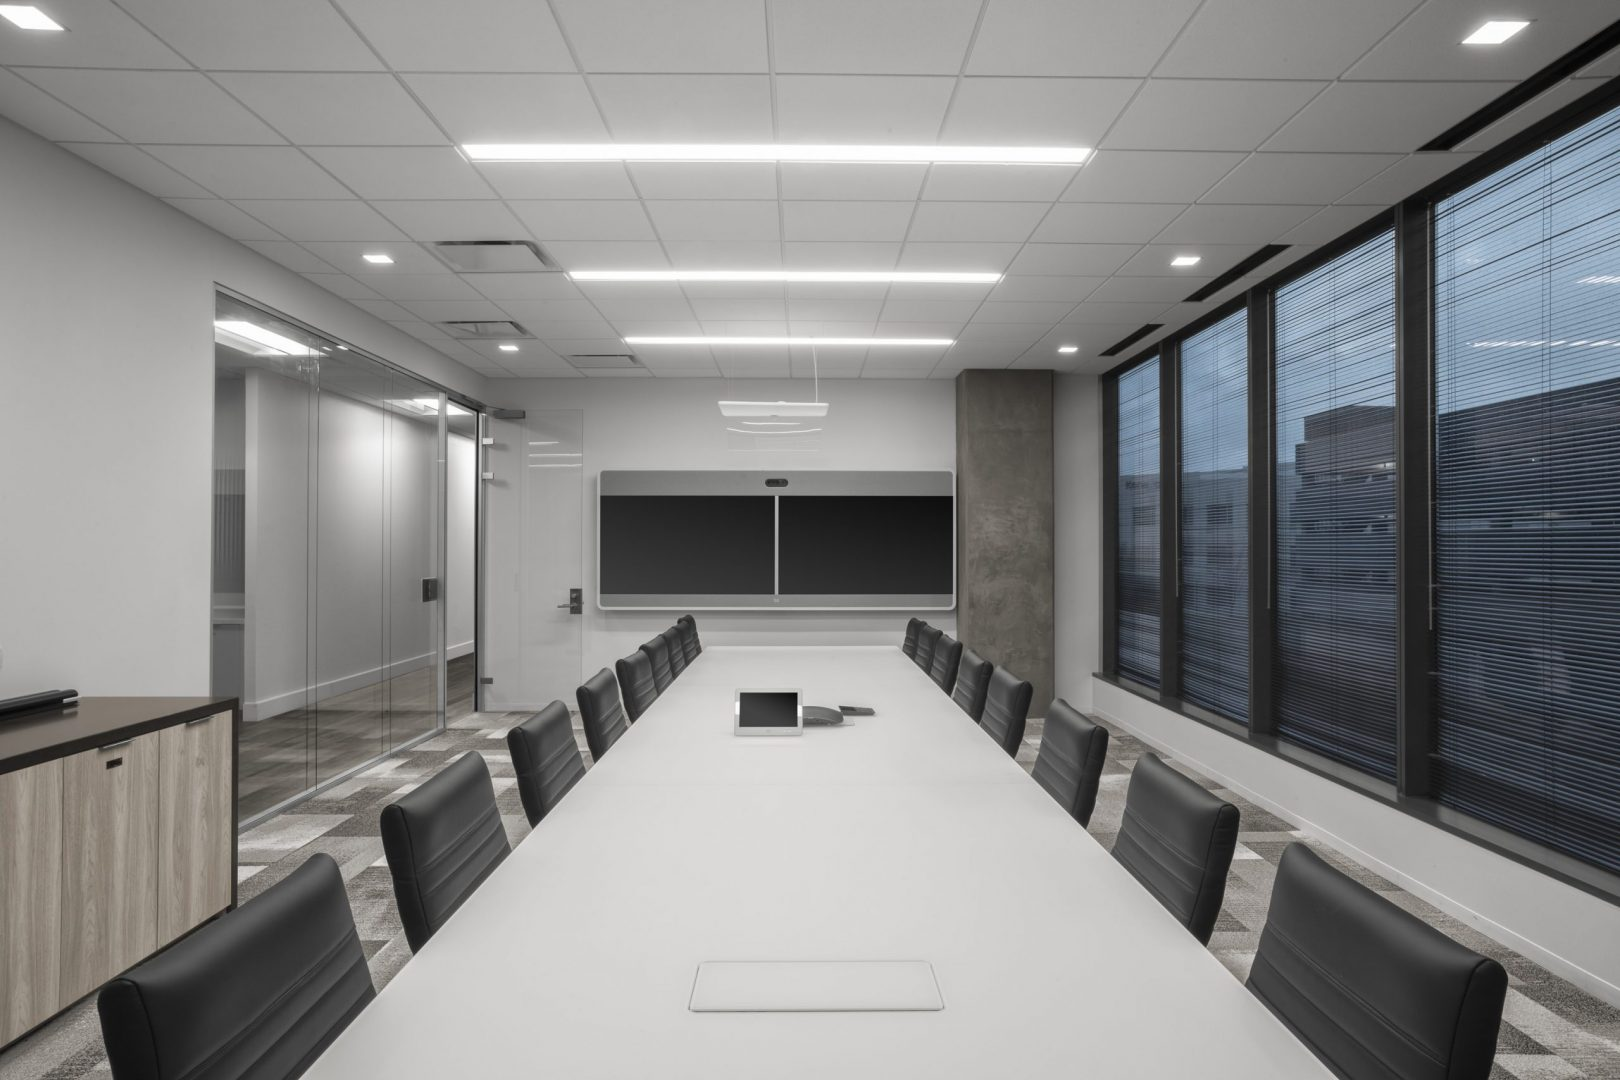 Corporate Financial Interior Design Cardtronics Conference Room